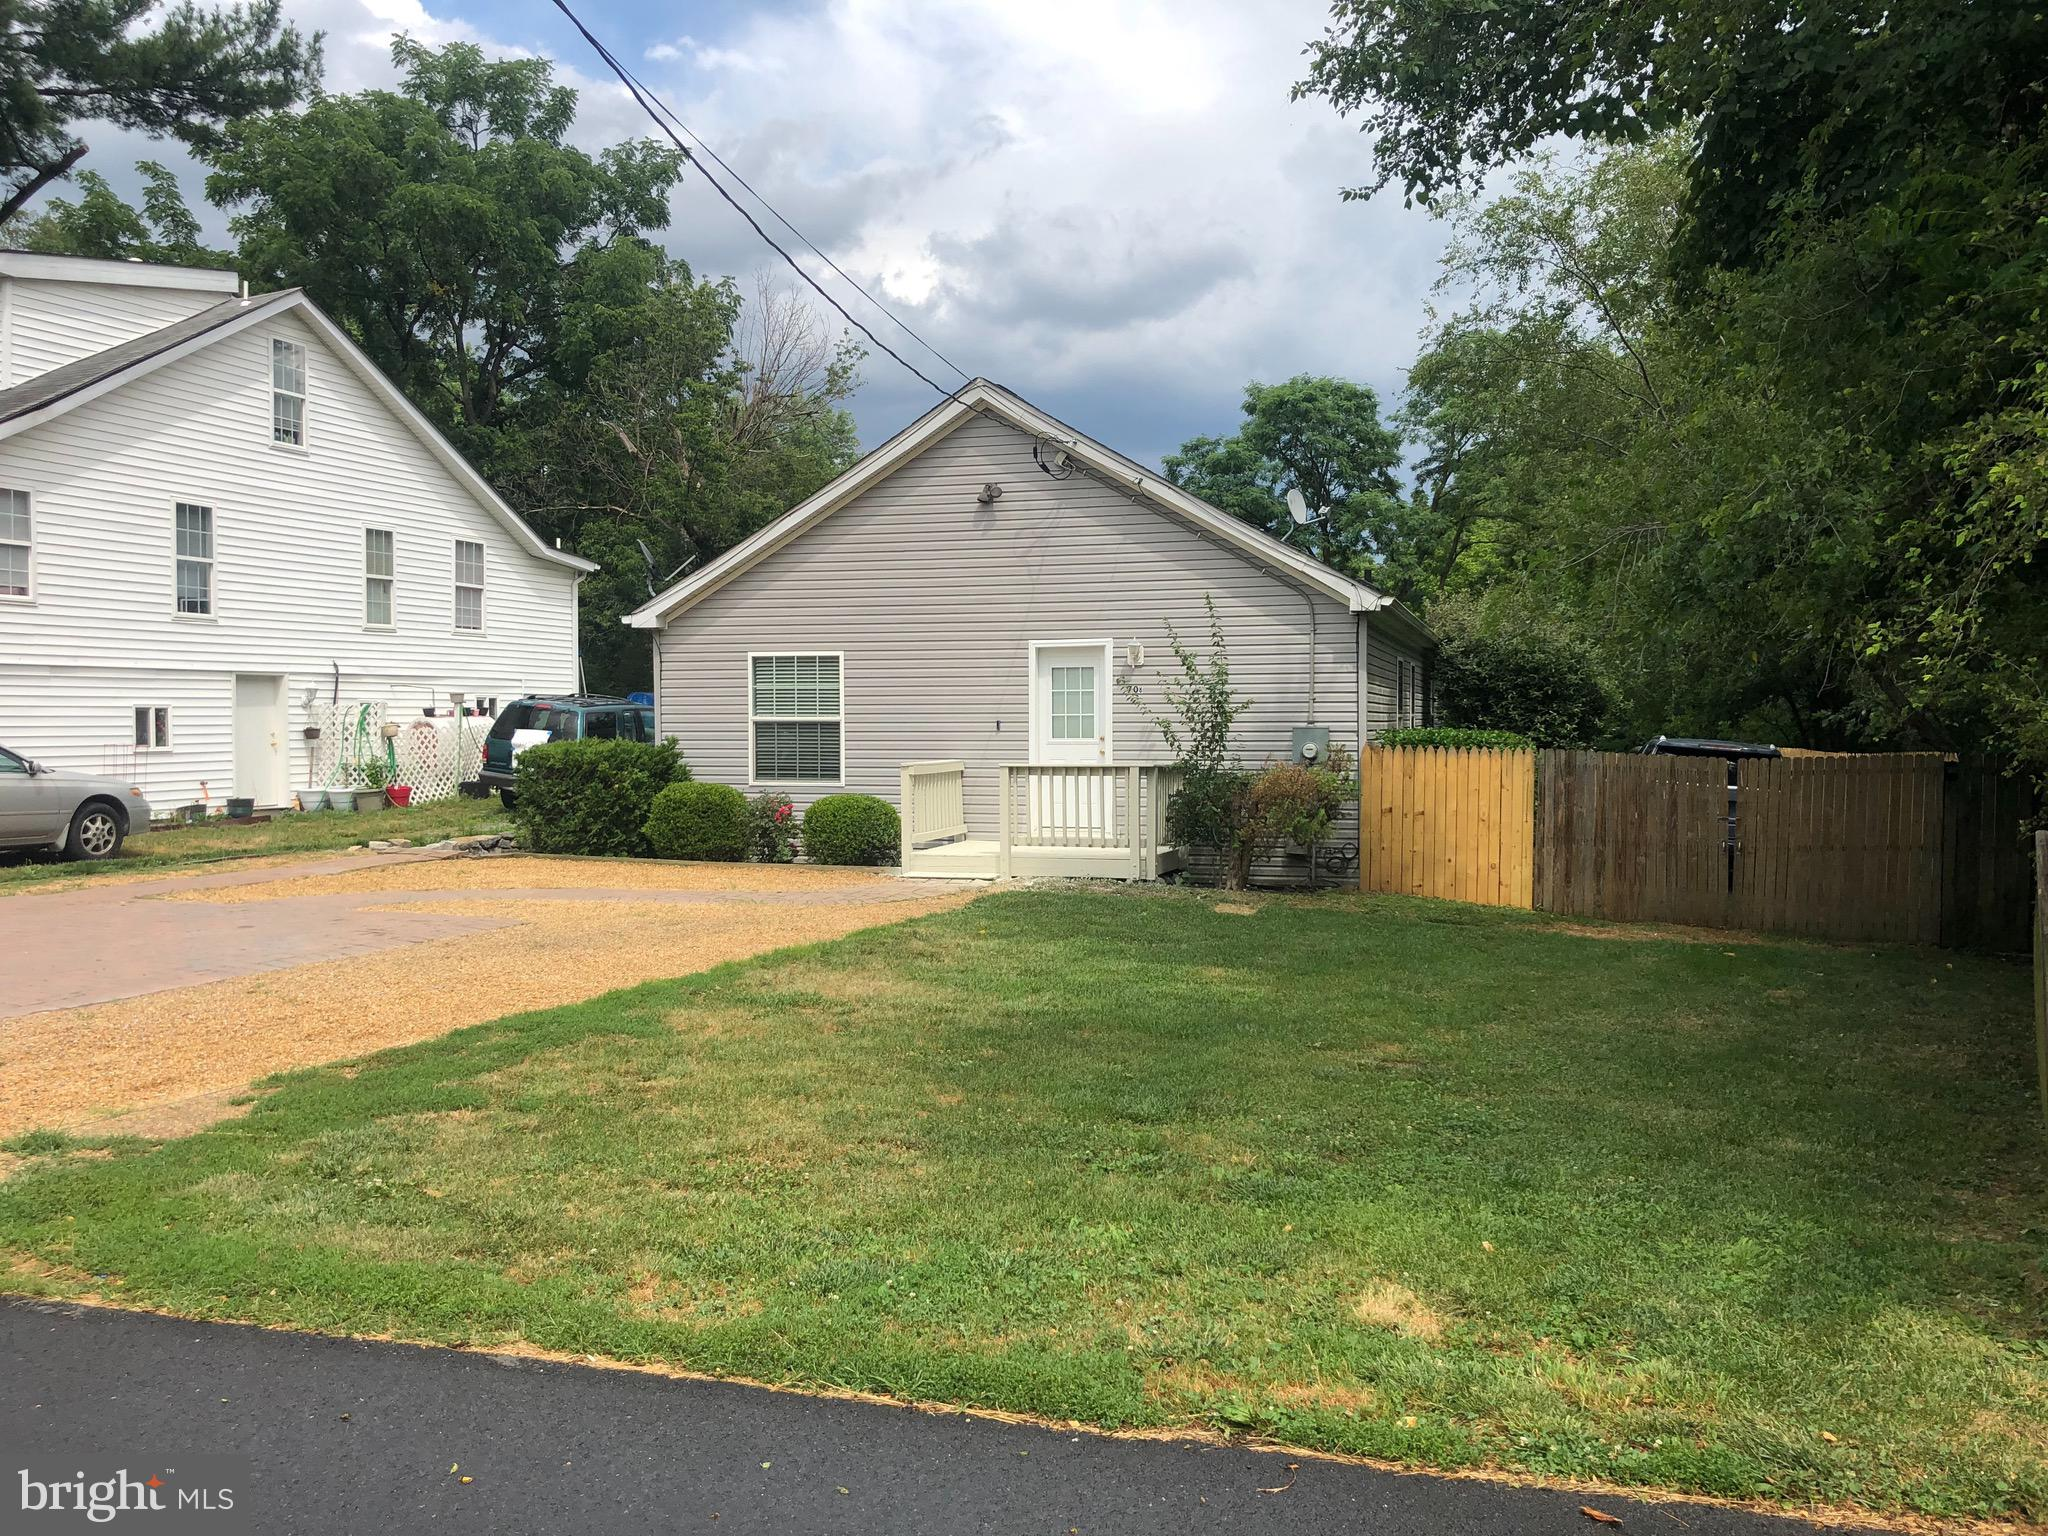 This 3 bedroom 2 bathroom home will not disappoint! A one level living, this property has walls fres